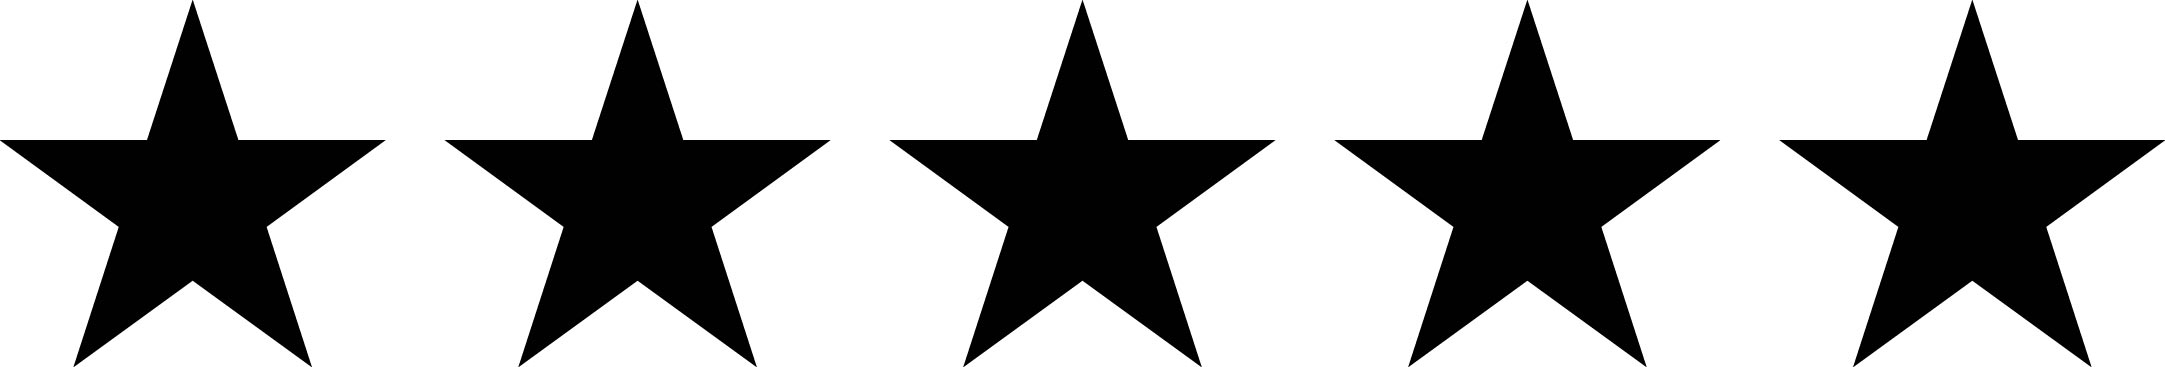 Image result for five black star